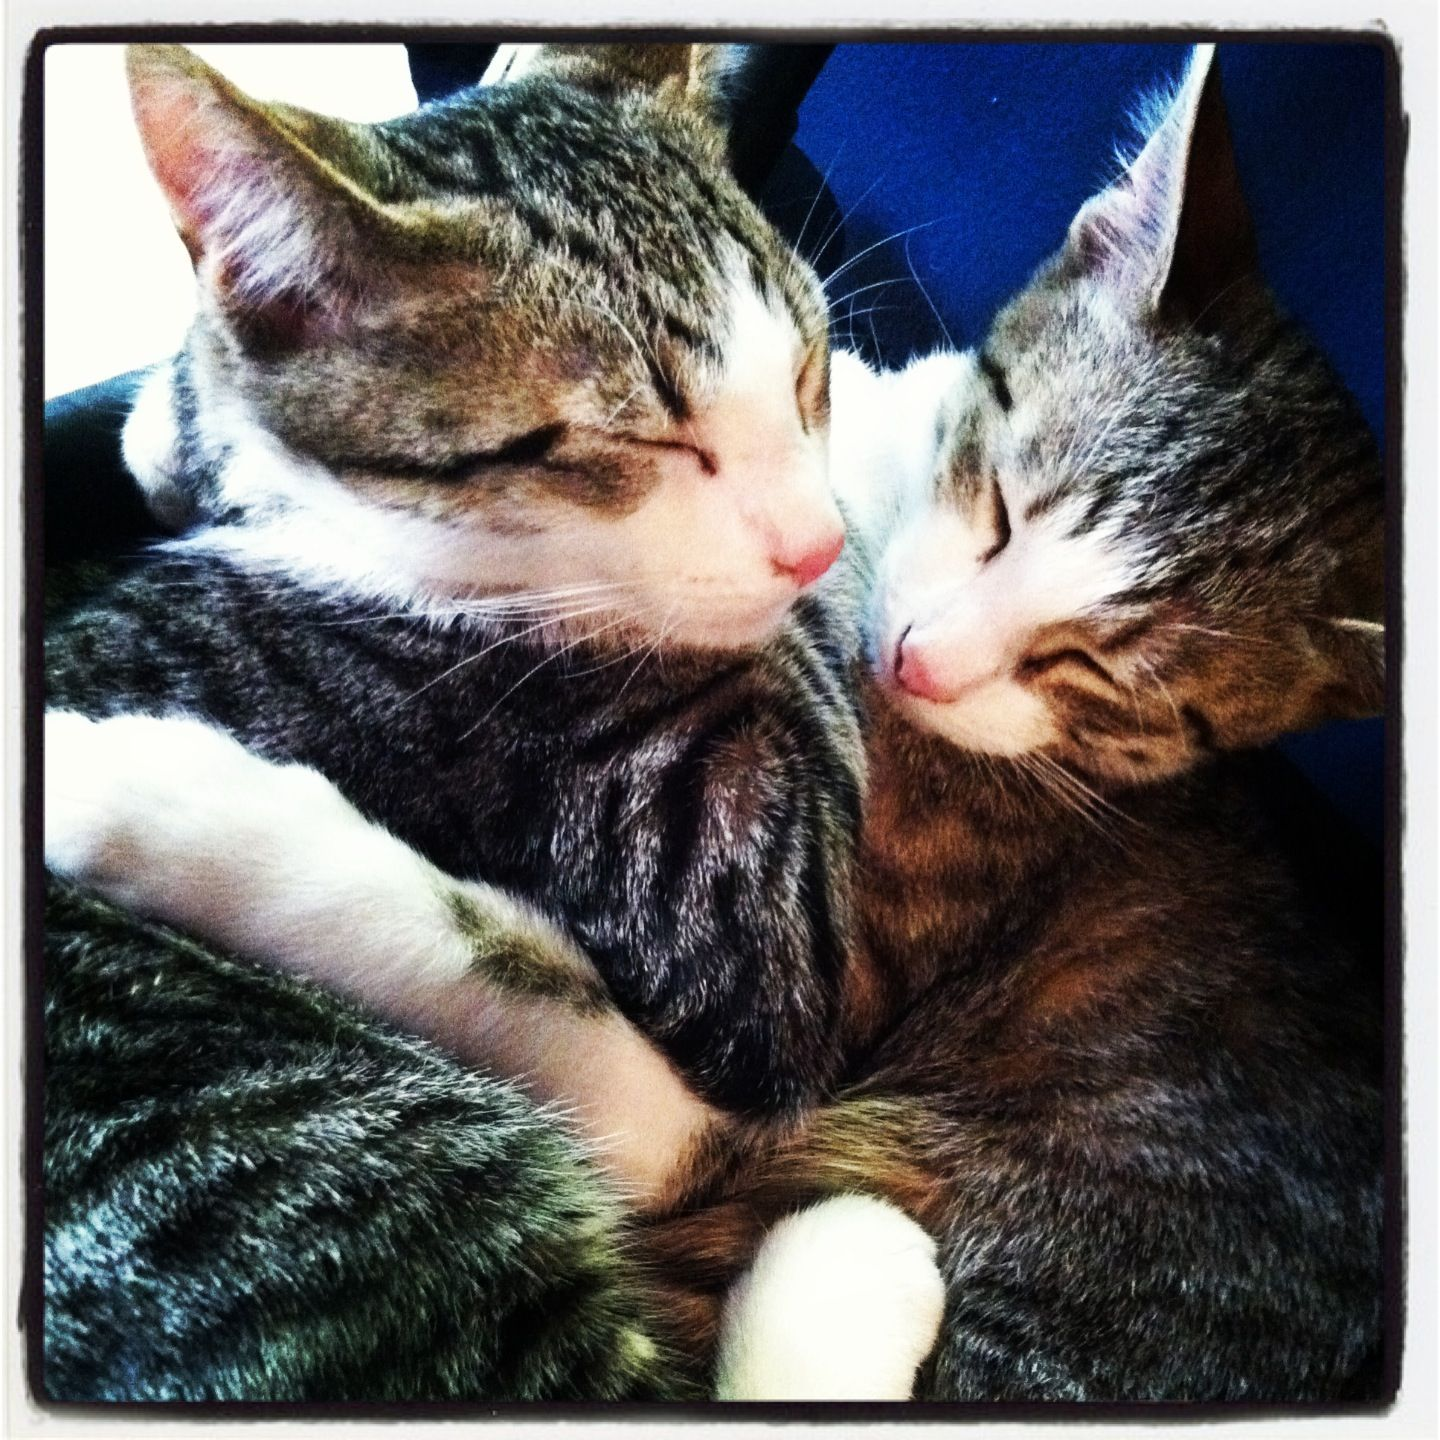 My cute cuddling kitties <3